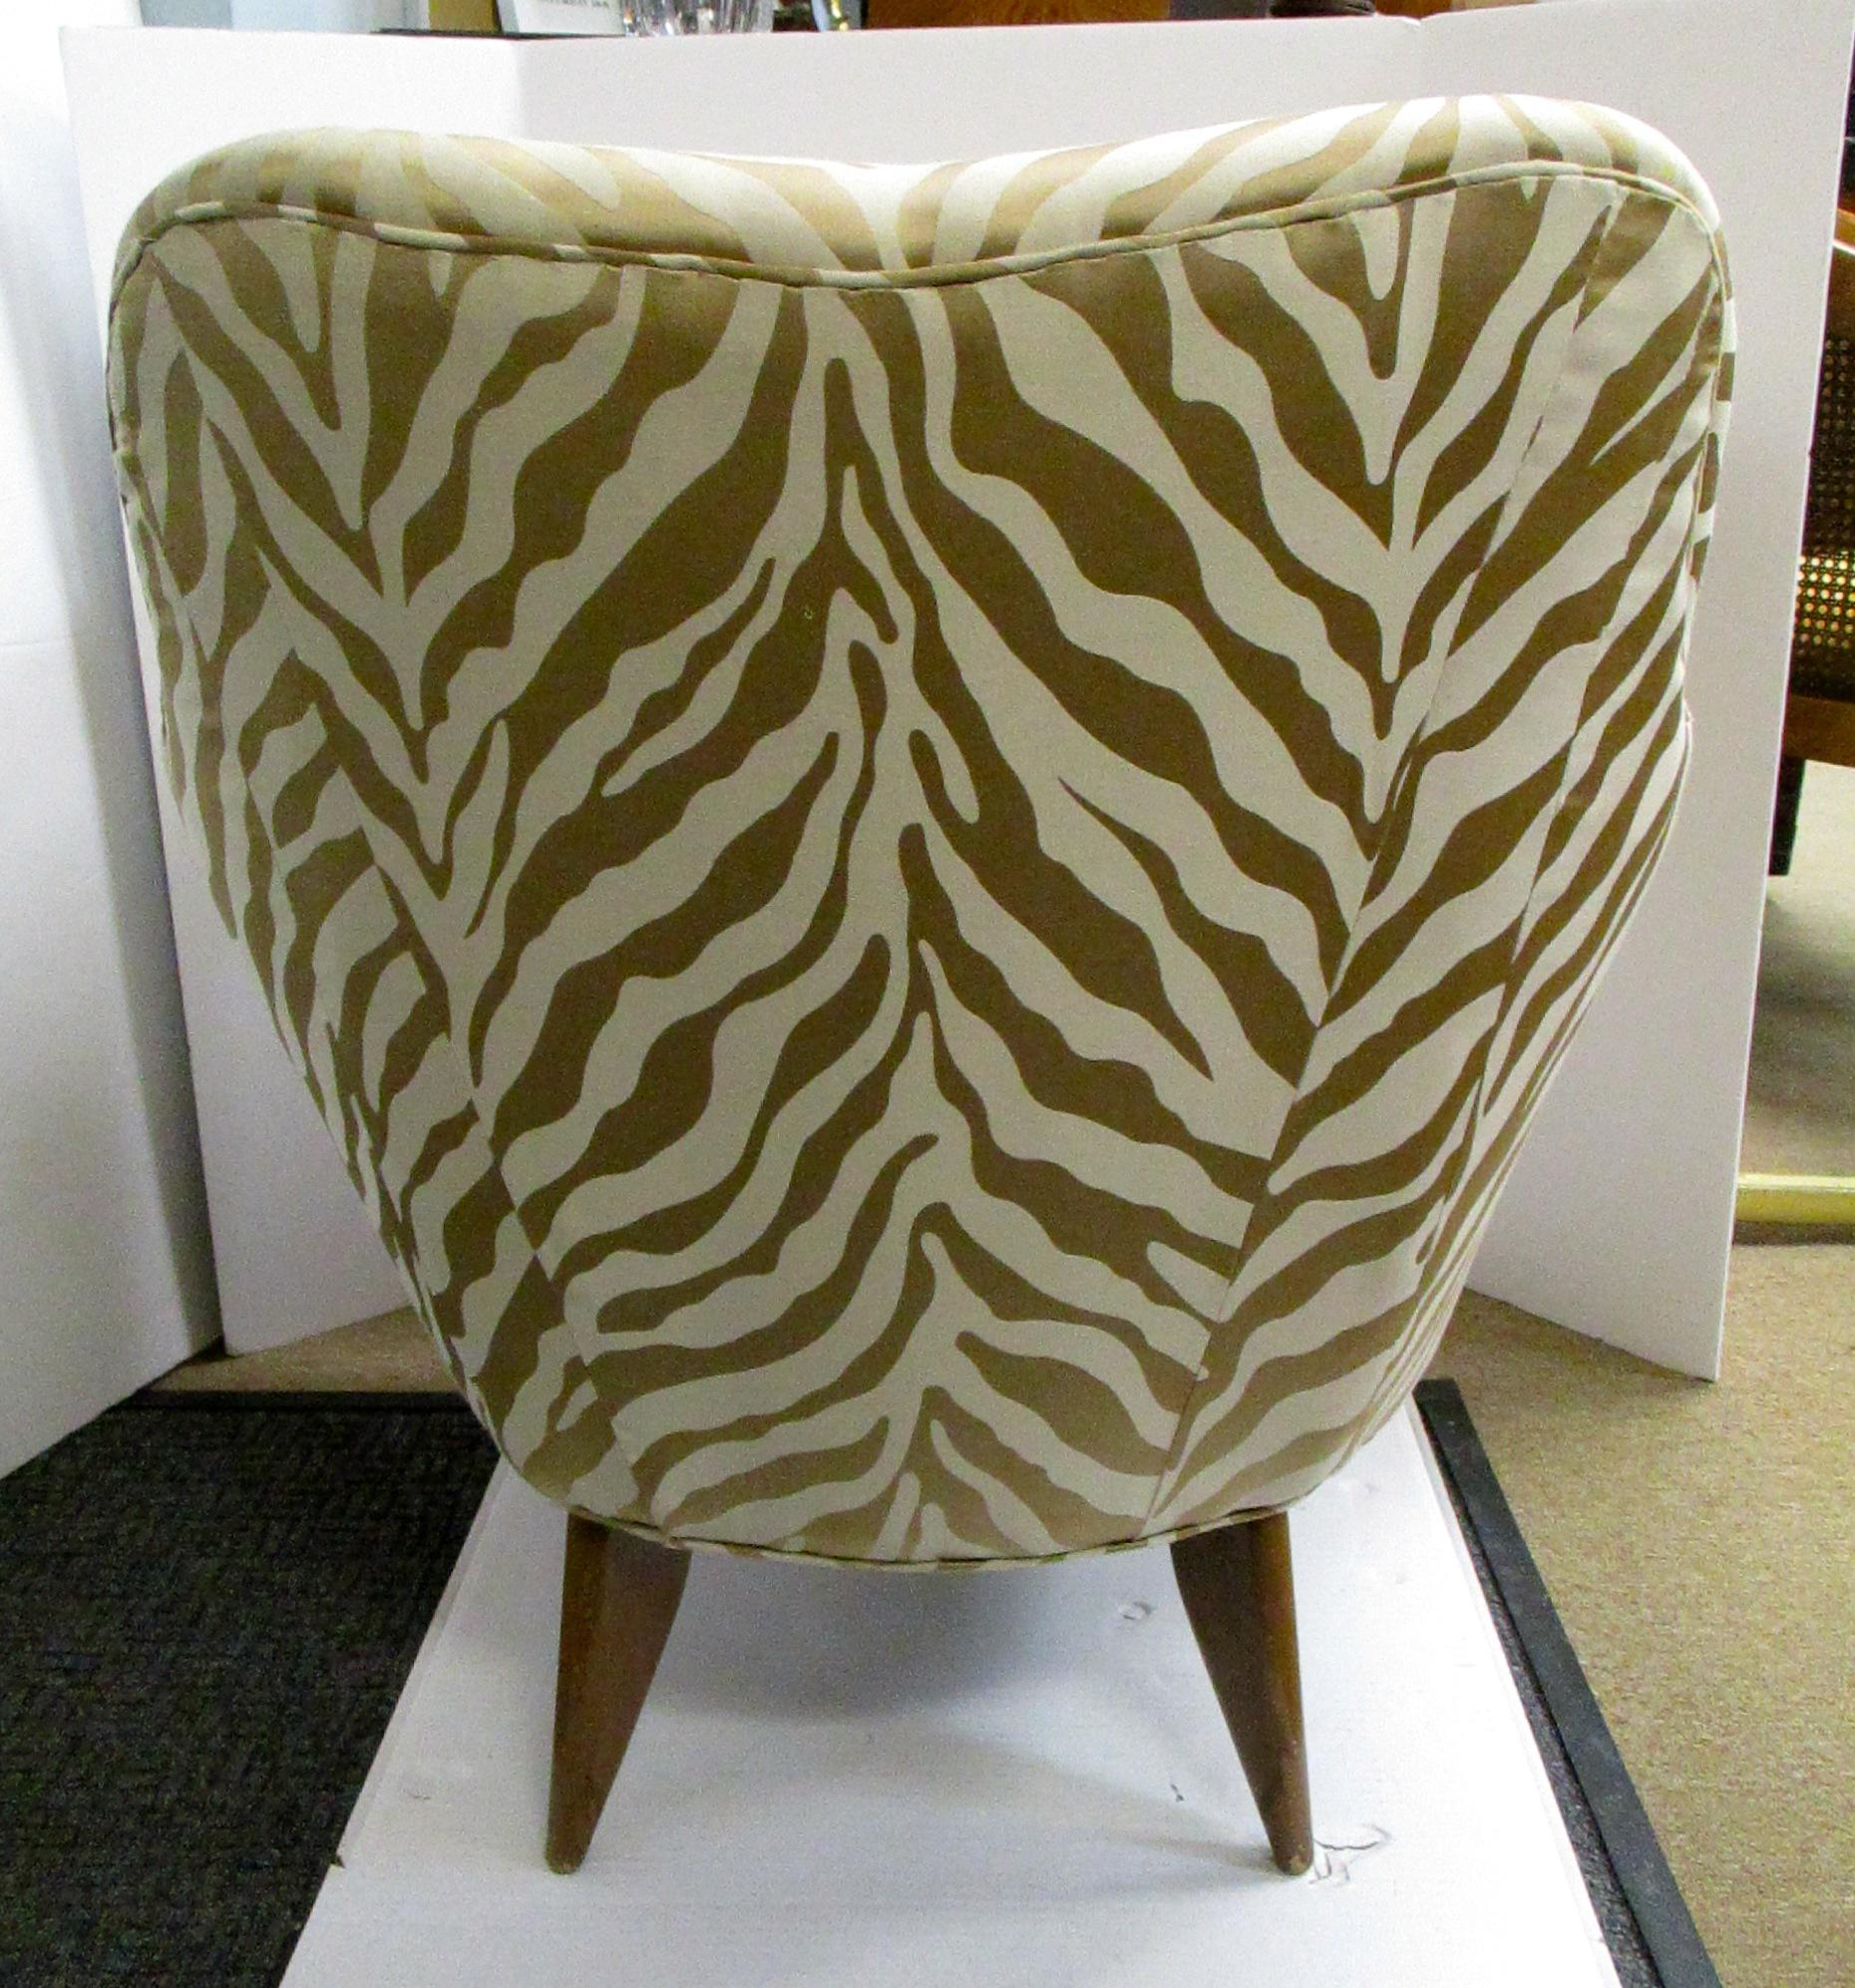 Beau Mid Century Upholstered Zebra Print Arm Chair   Image 4 Of 5